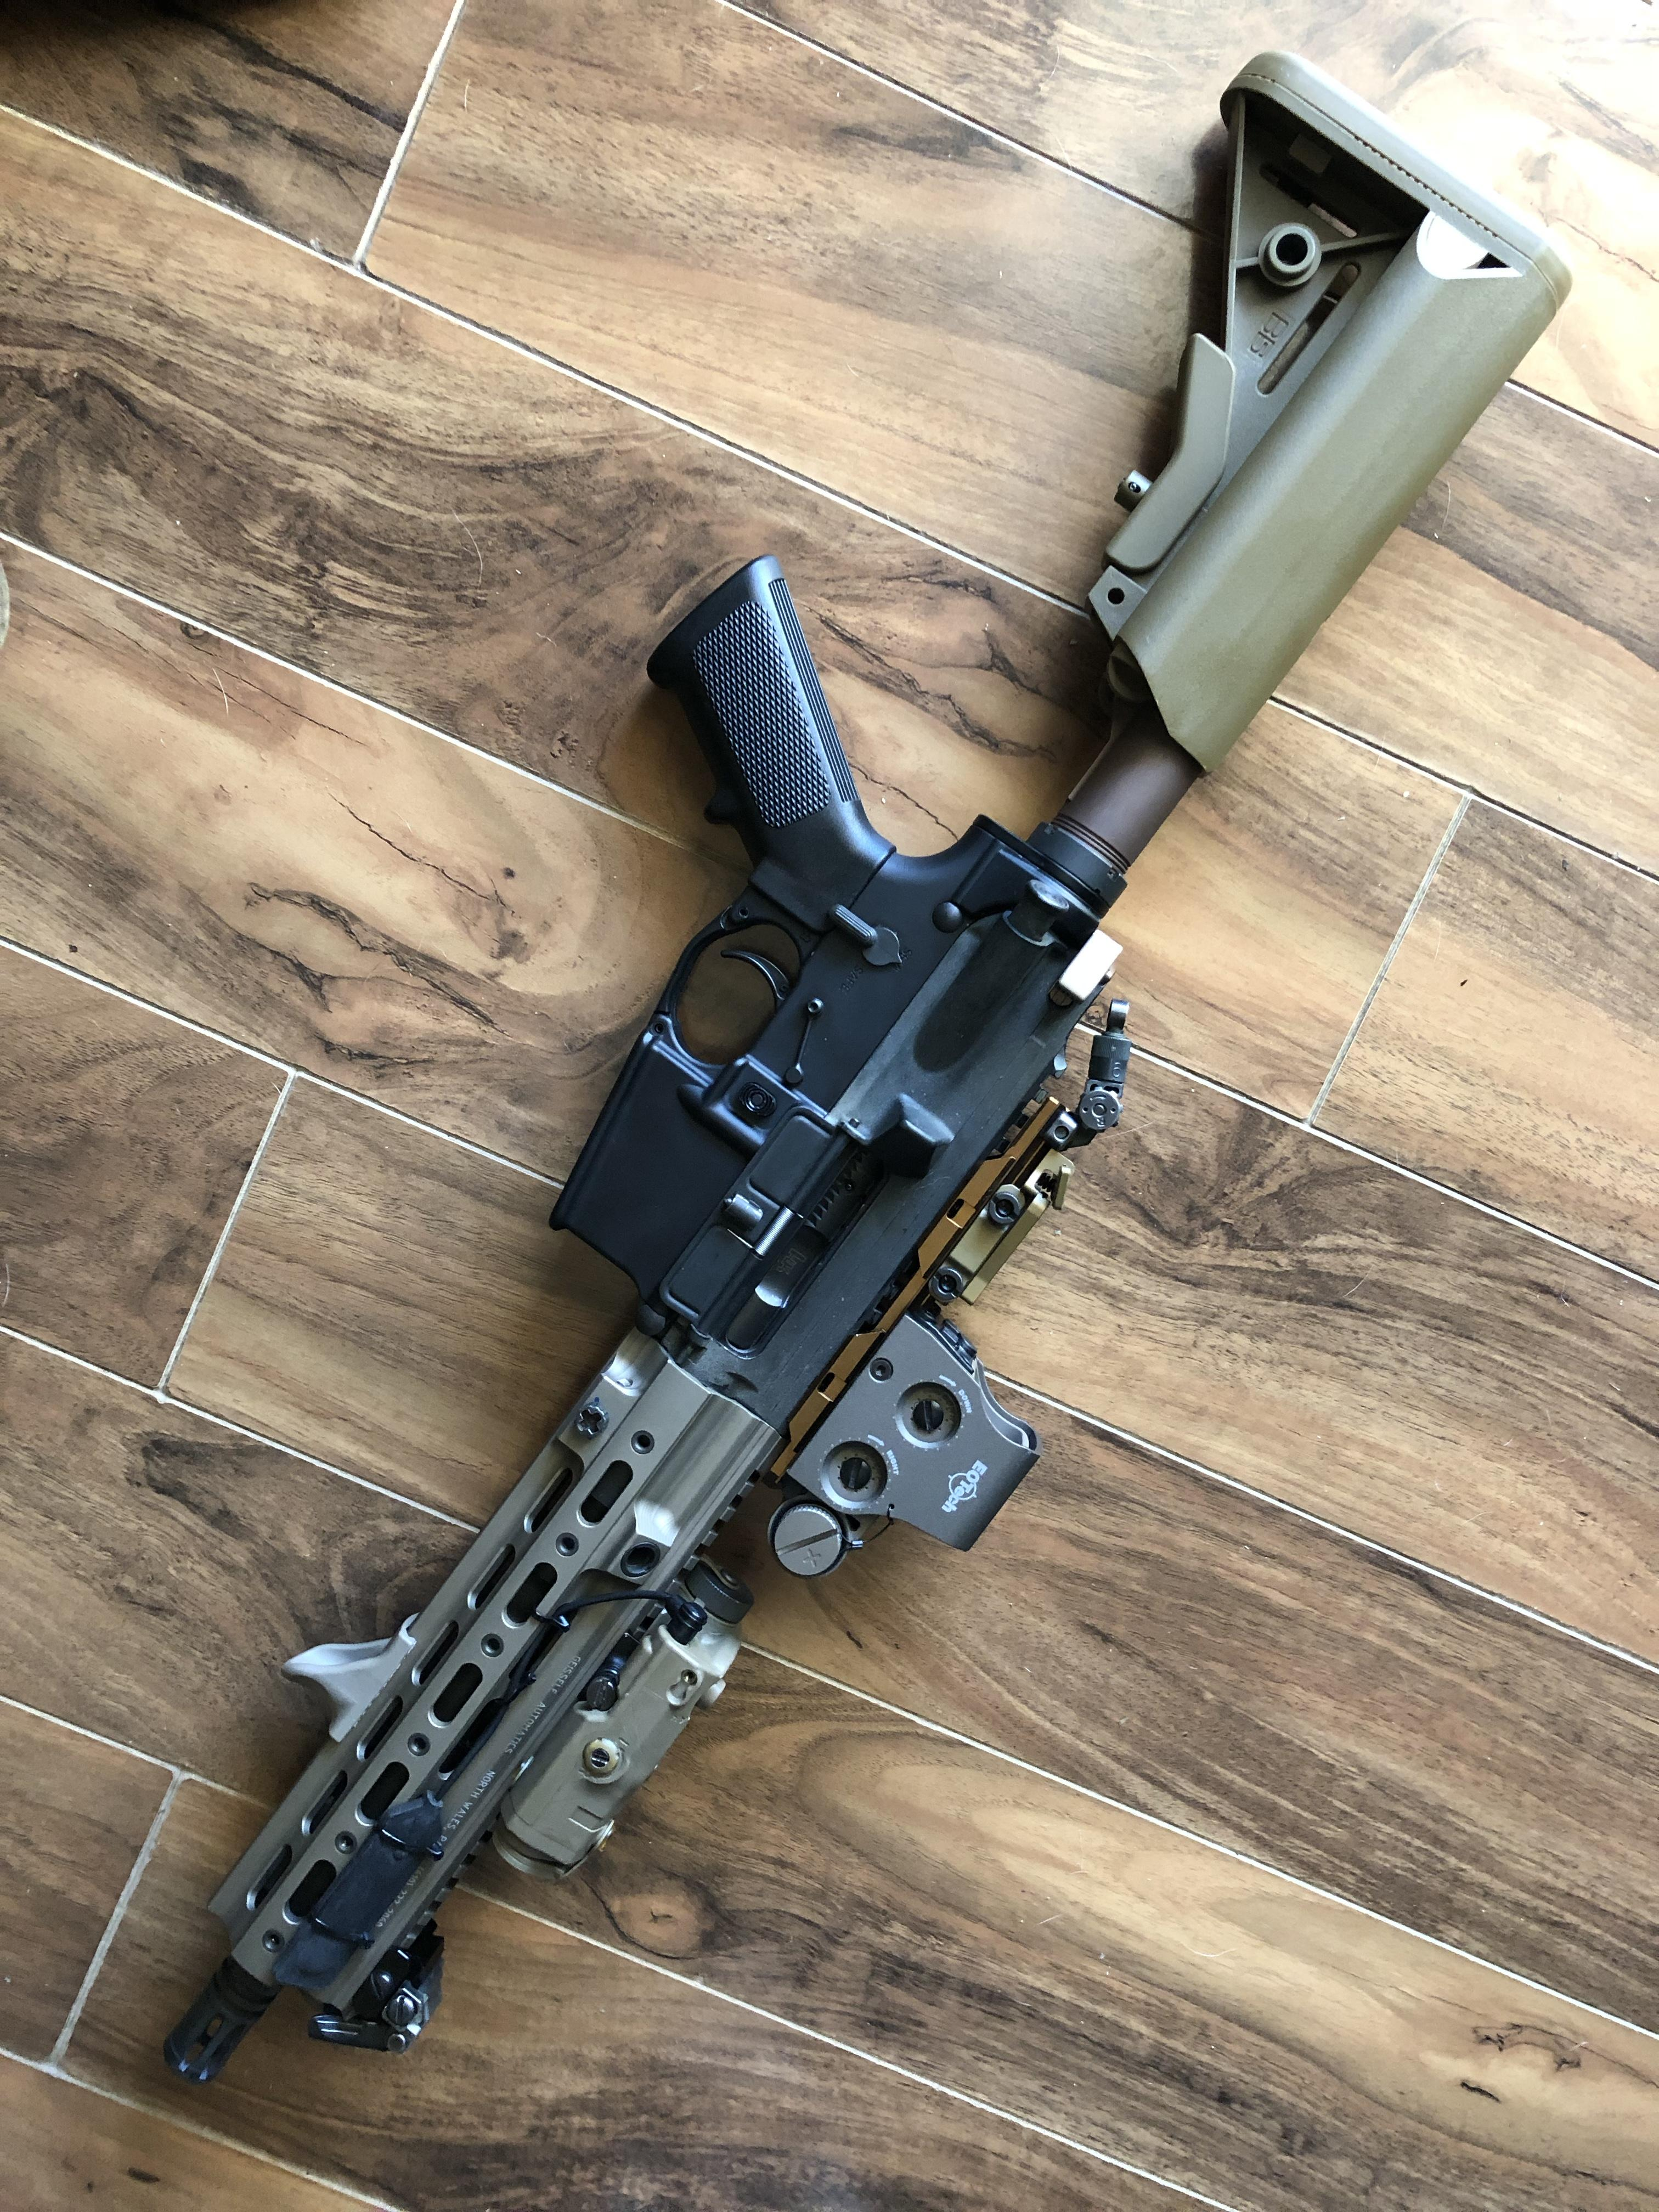 HK416 Owners Picture Thread (genuine HK416's only please)-bc519807-3e5b-4acf-828e-a43752ac598e_1538710970081.jpeg